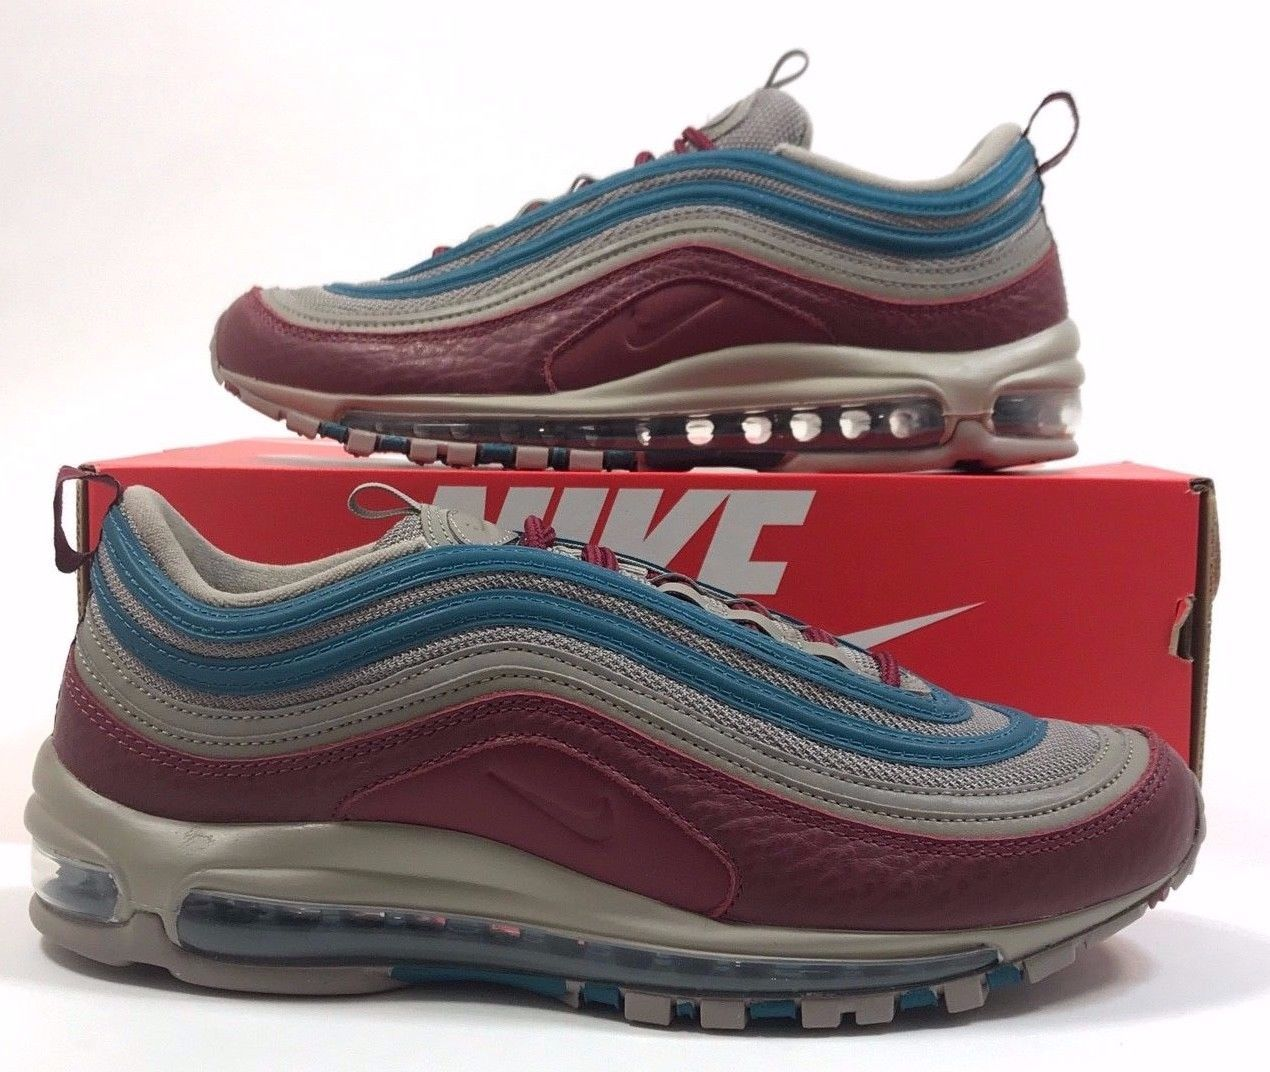 61b9d2d6430c33 Details about Nike Air Max 97 SE AQ4126 202 Light Taupe Team Red